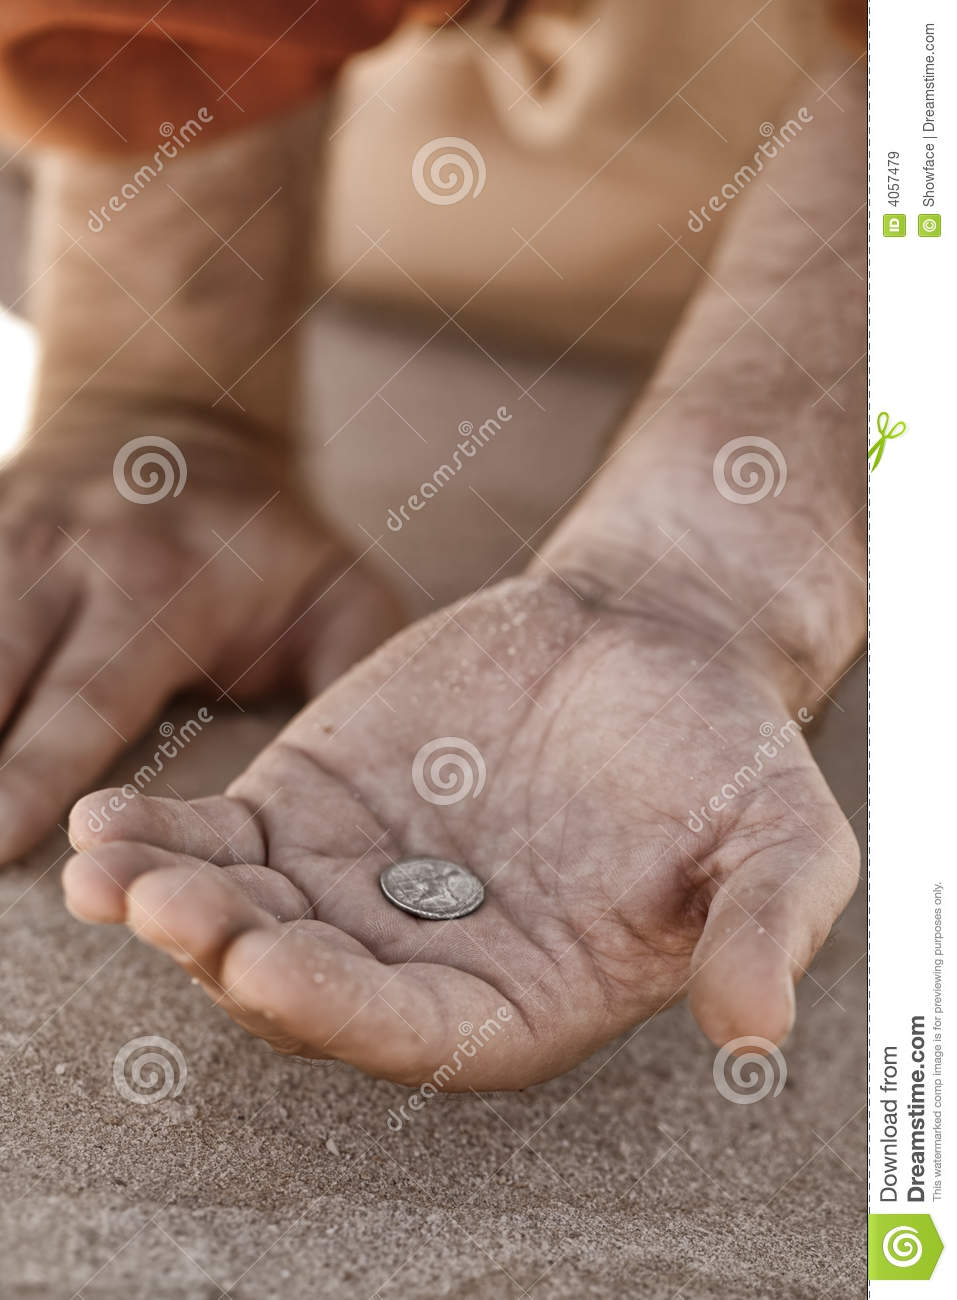 Beggar hand with coin stock image. Image of destitute ...  Beggar hand wit...